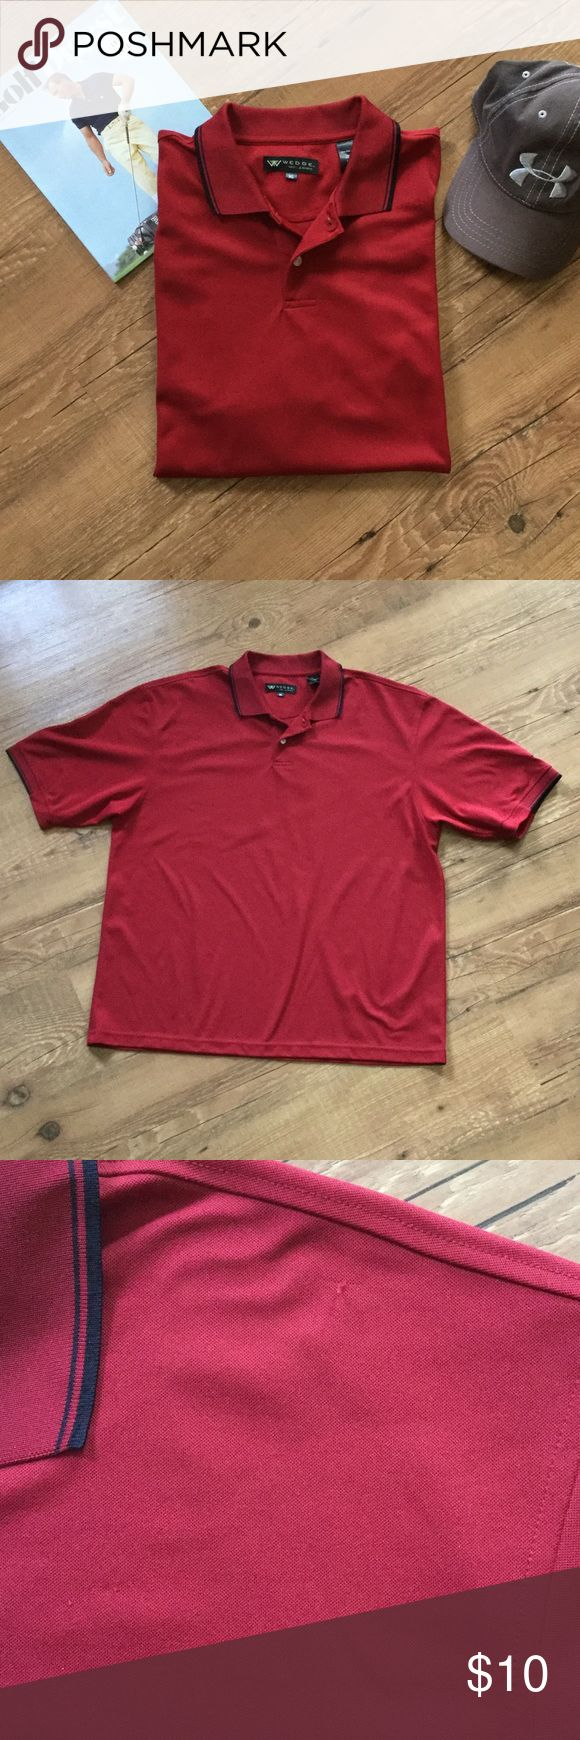 "Men's red polo shirt Short sleeve, red polo ""golf"" shirt. Black trim on collar and sleeves. There are a couple small snags on the left shoulder and chest area (see pic) and one on the back. 100% polyester.  Please ask any necessary questions prior to purchasing. No trades. Save even more with a bundle discount! Shirts Polos"